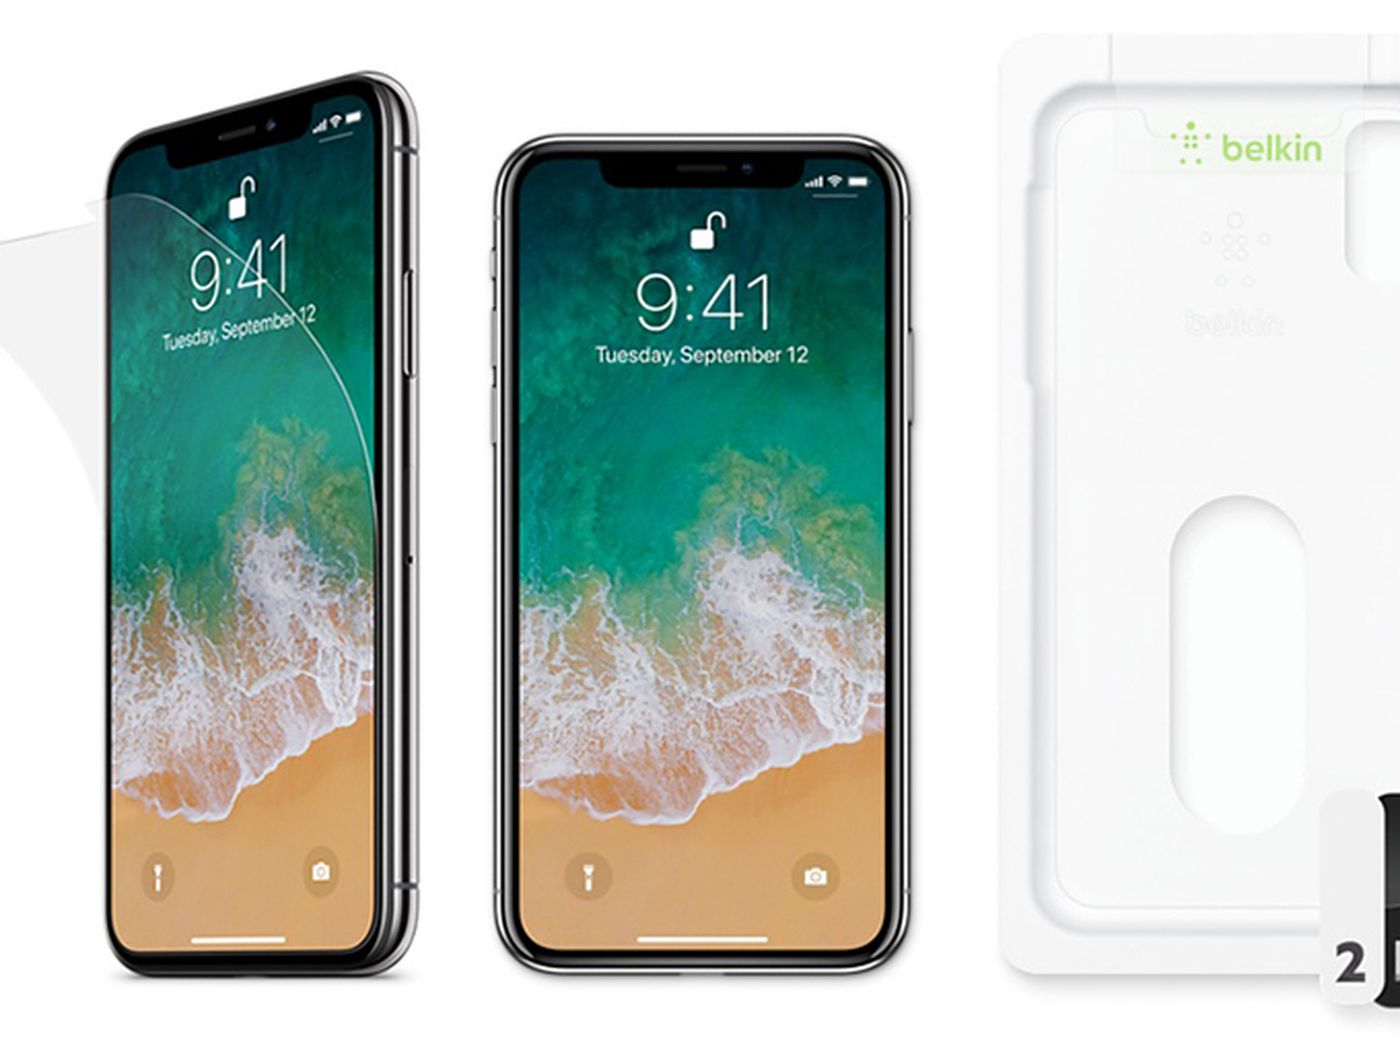 custodia iphone x belkin